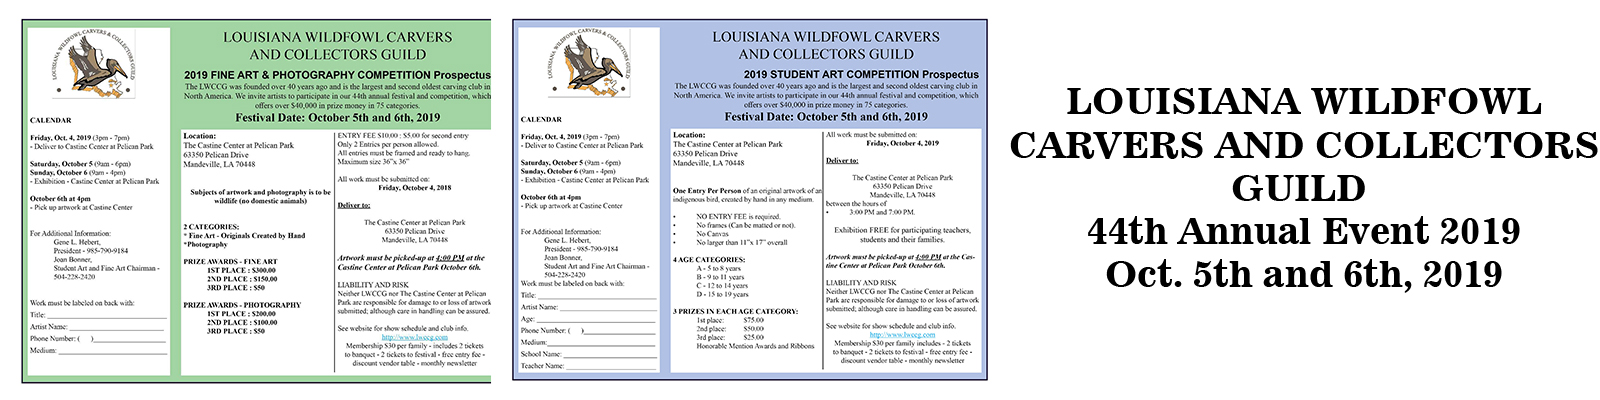 Louisiana Wildfowl Carvers and Collectors Guild